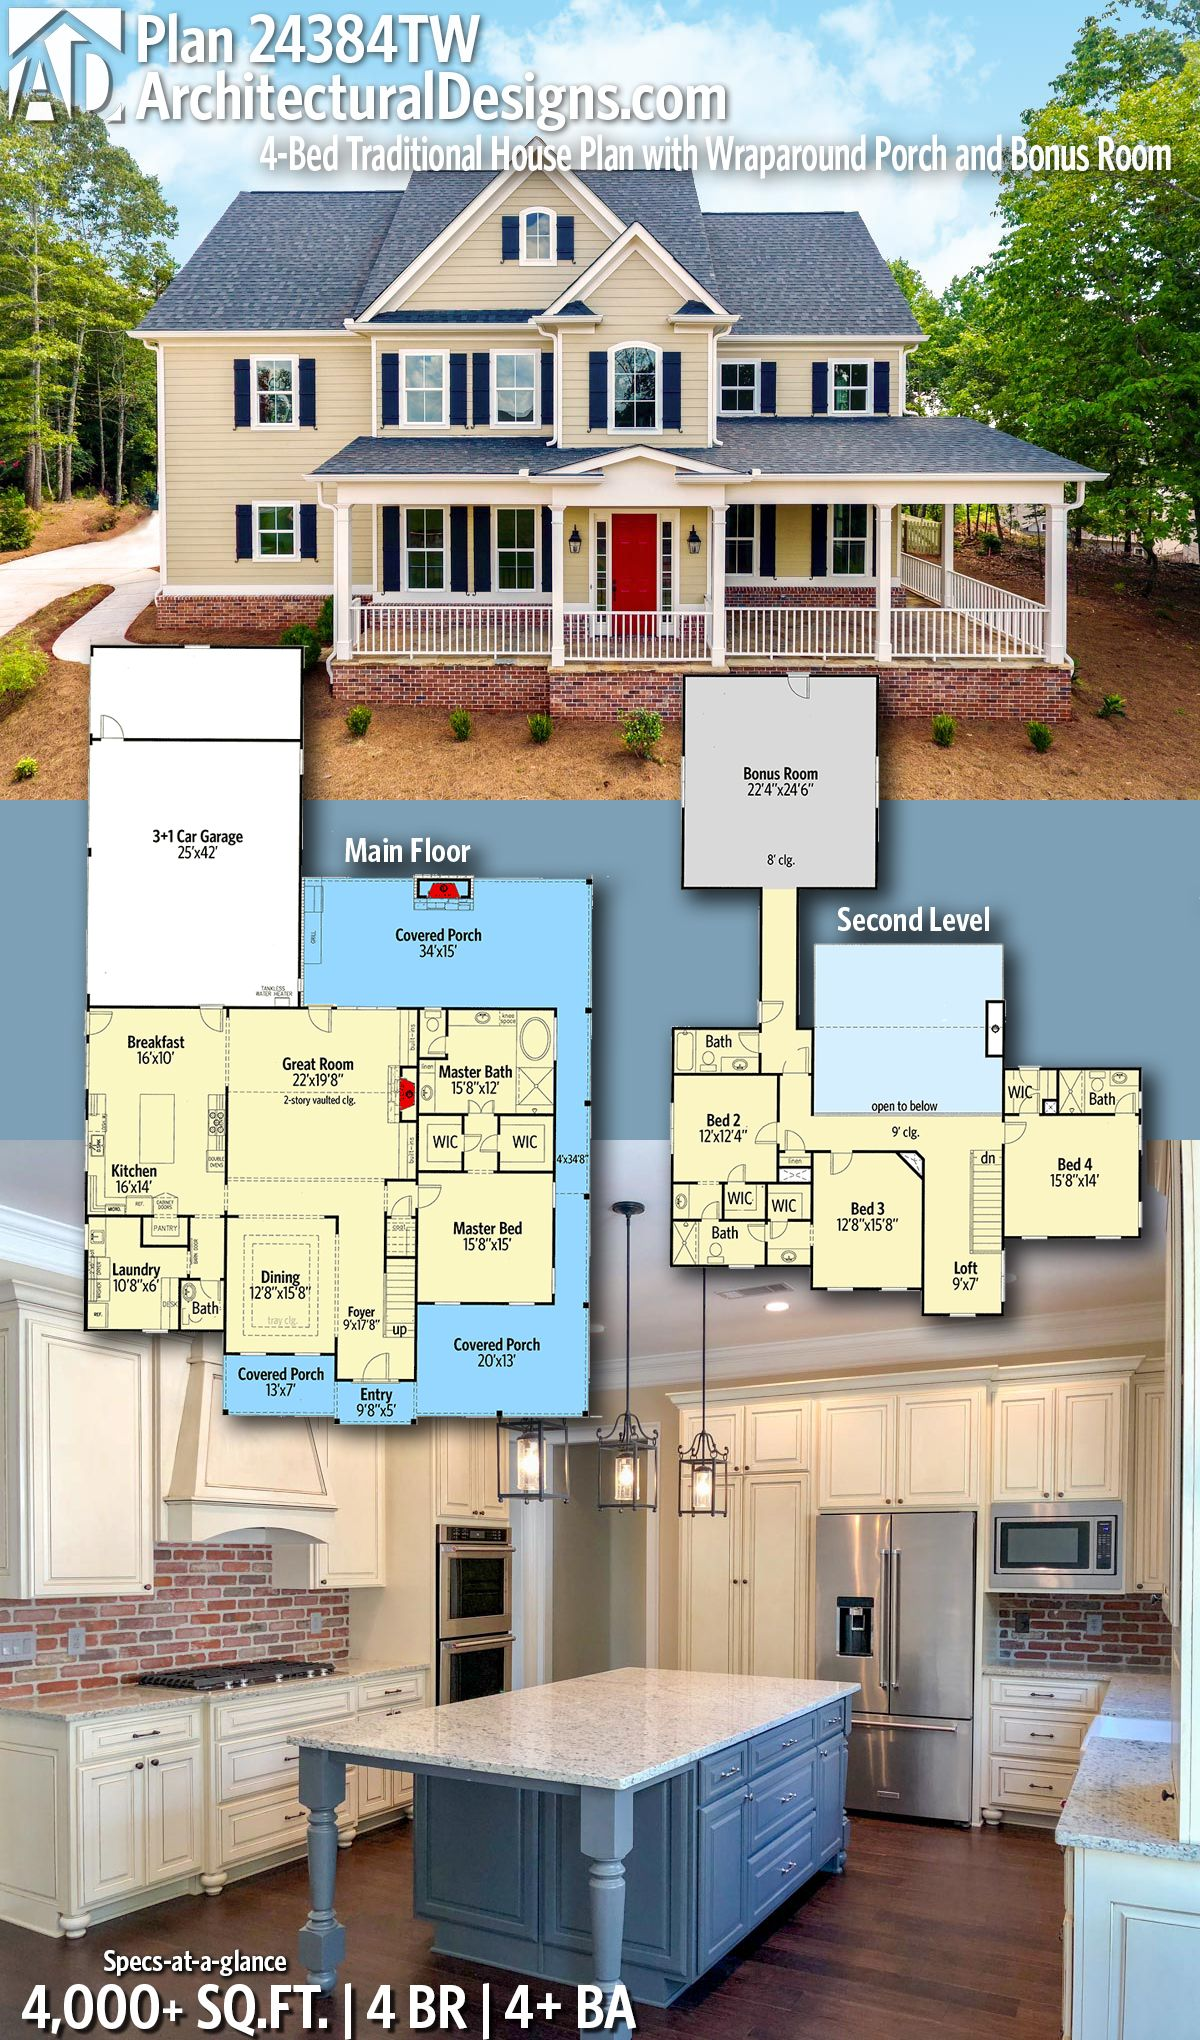 Introducing Architectural Designs Traditional House Plan 24384TW